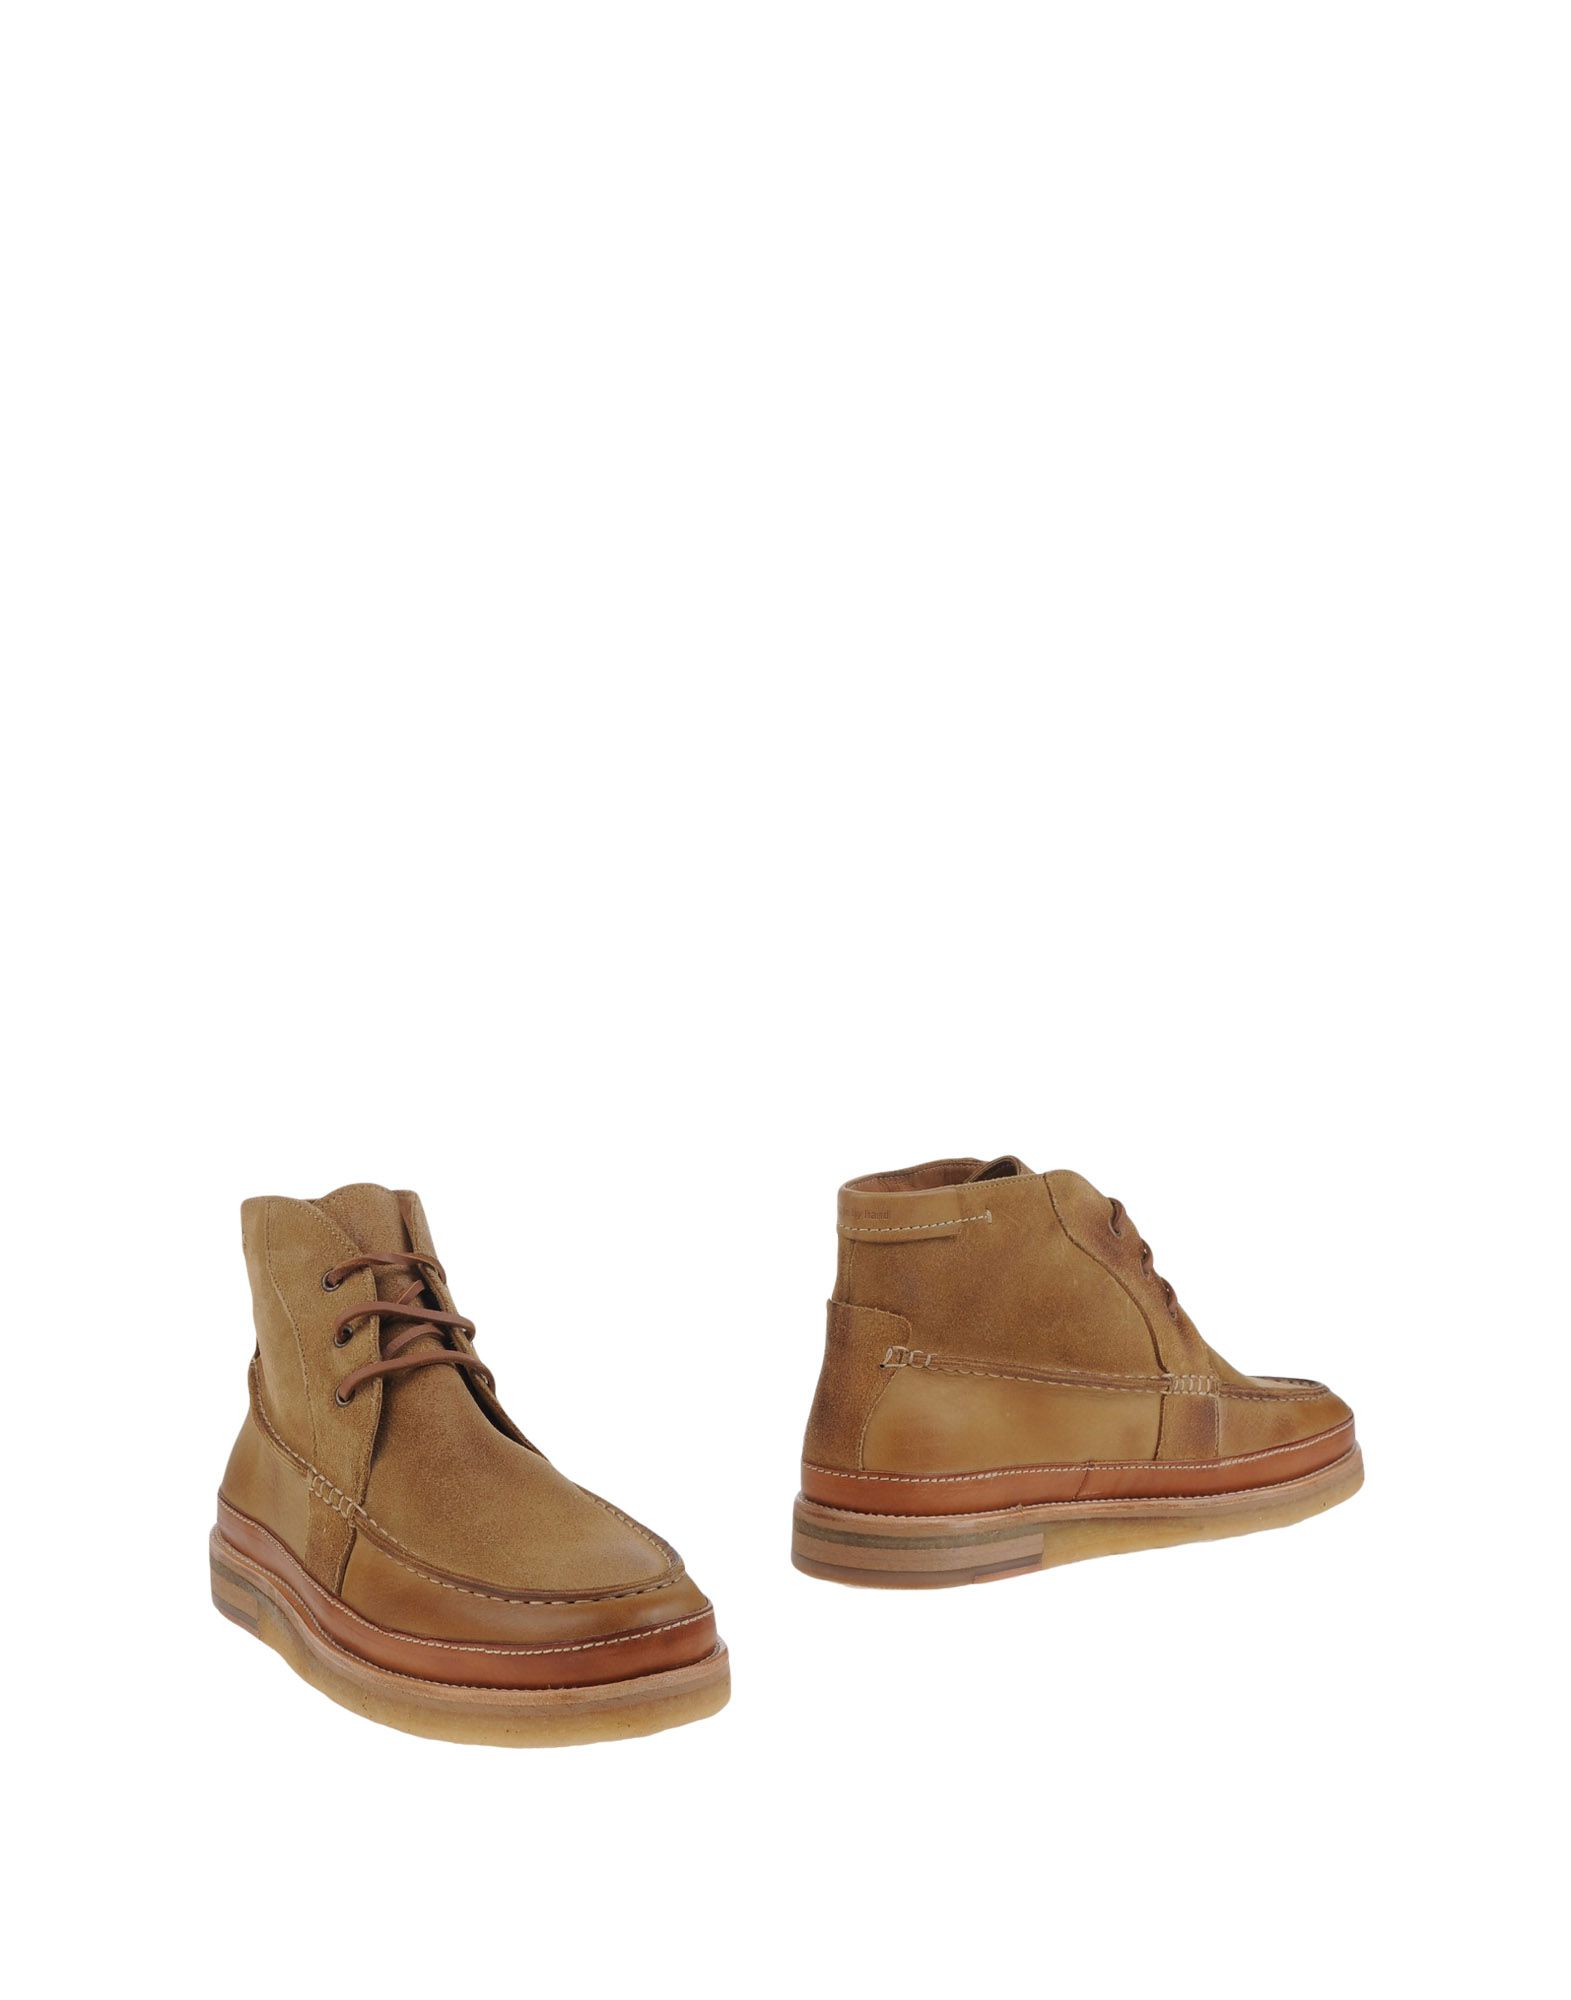 ndc ankle boots for lyst